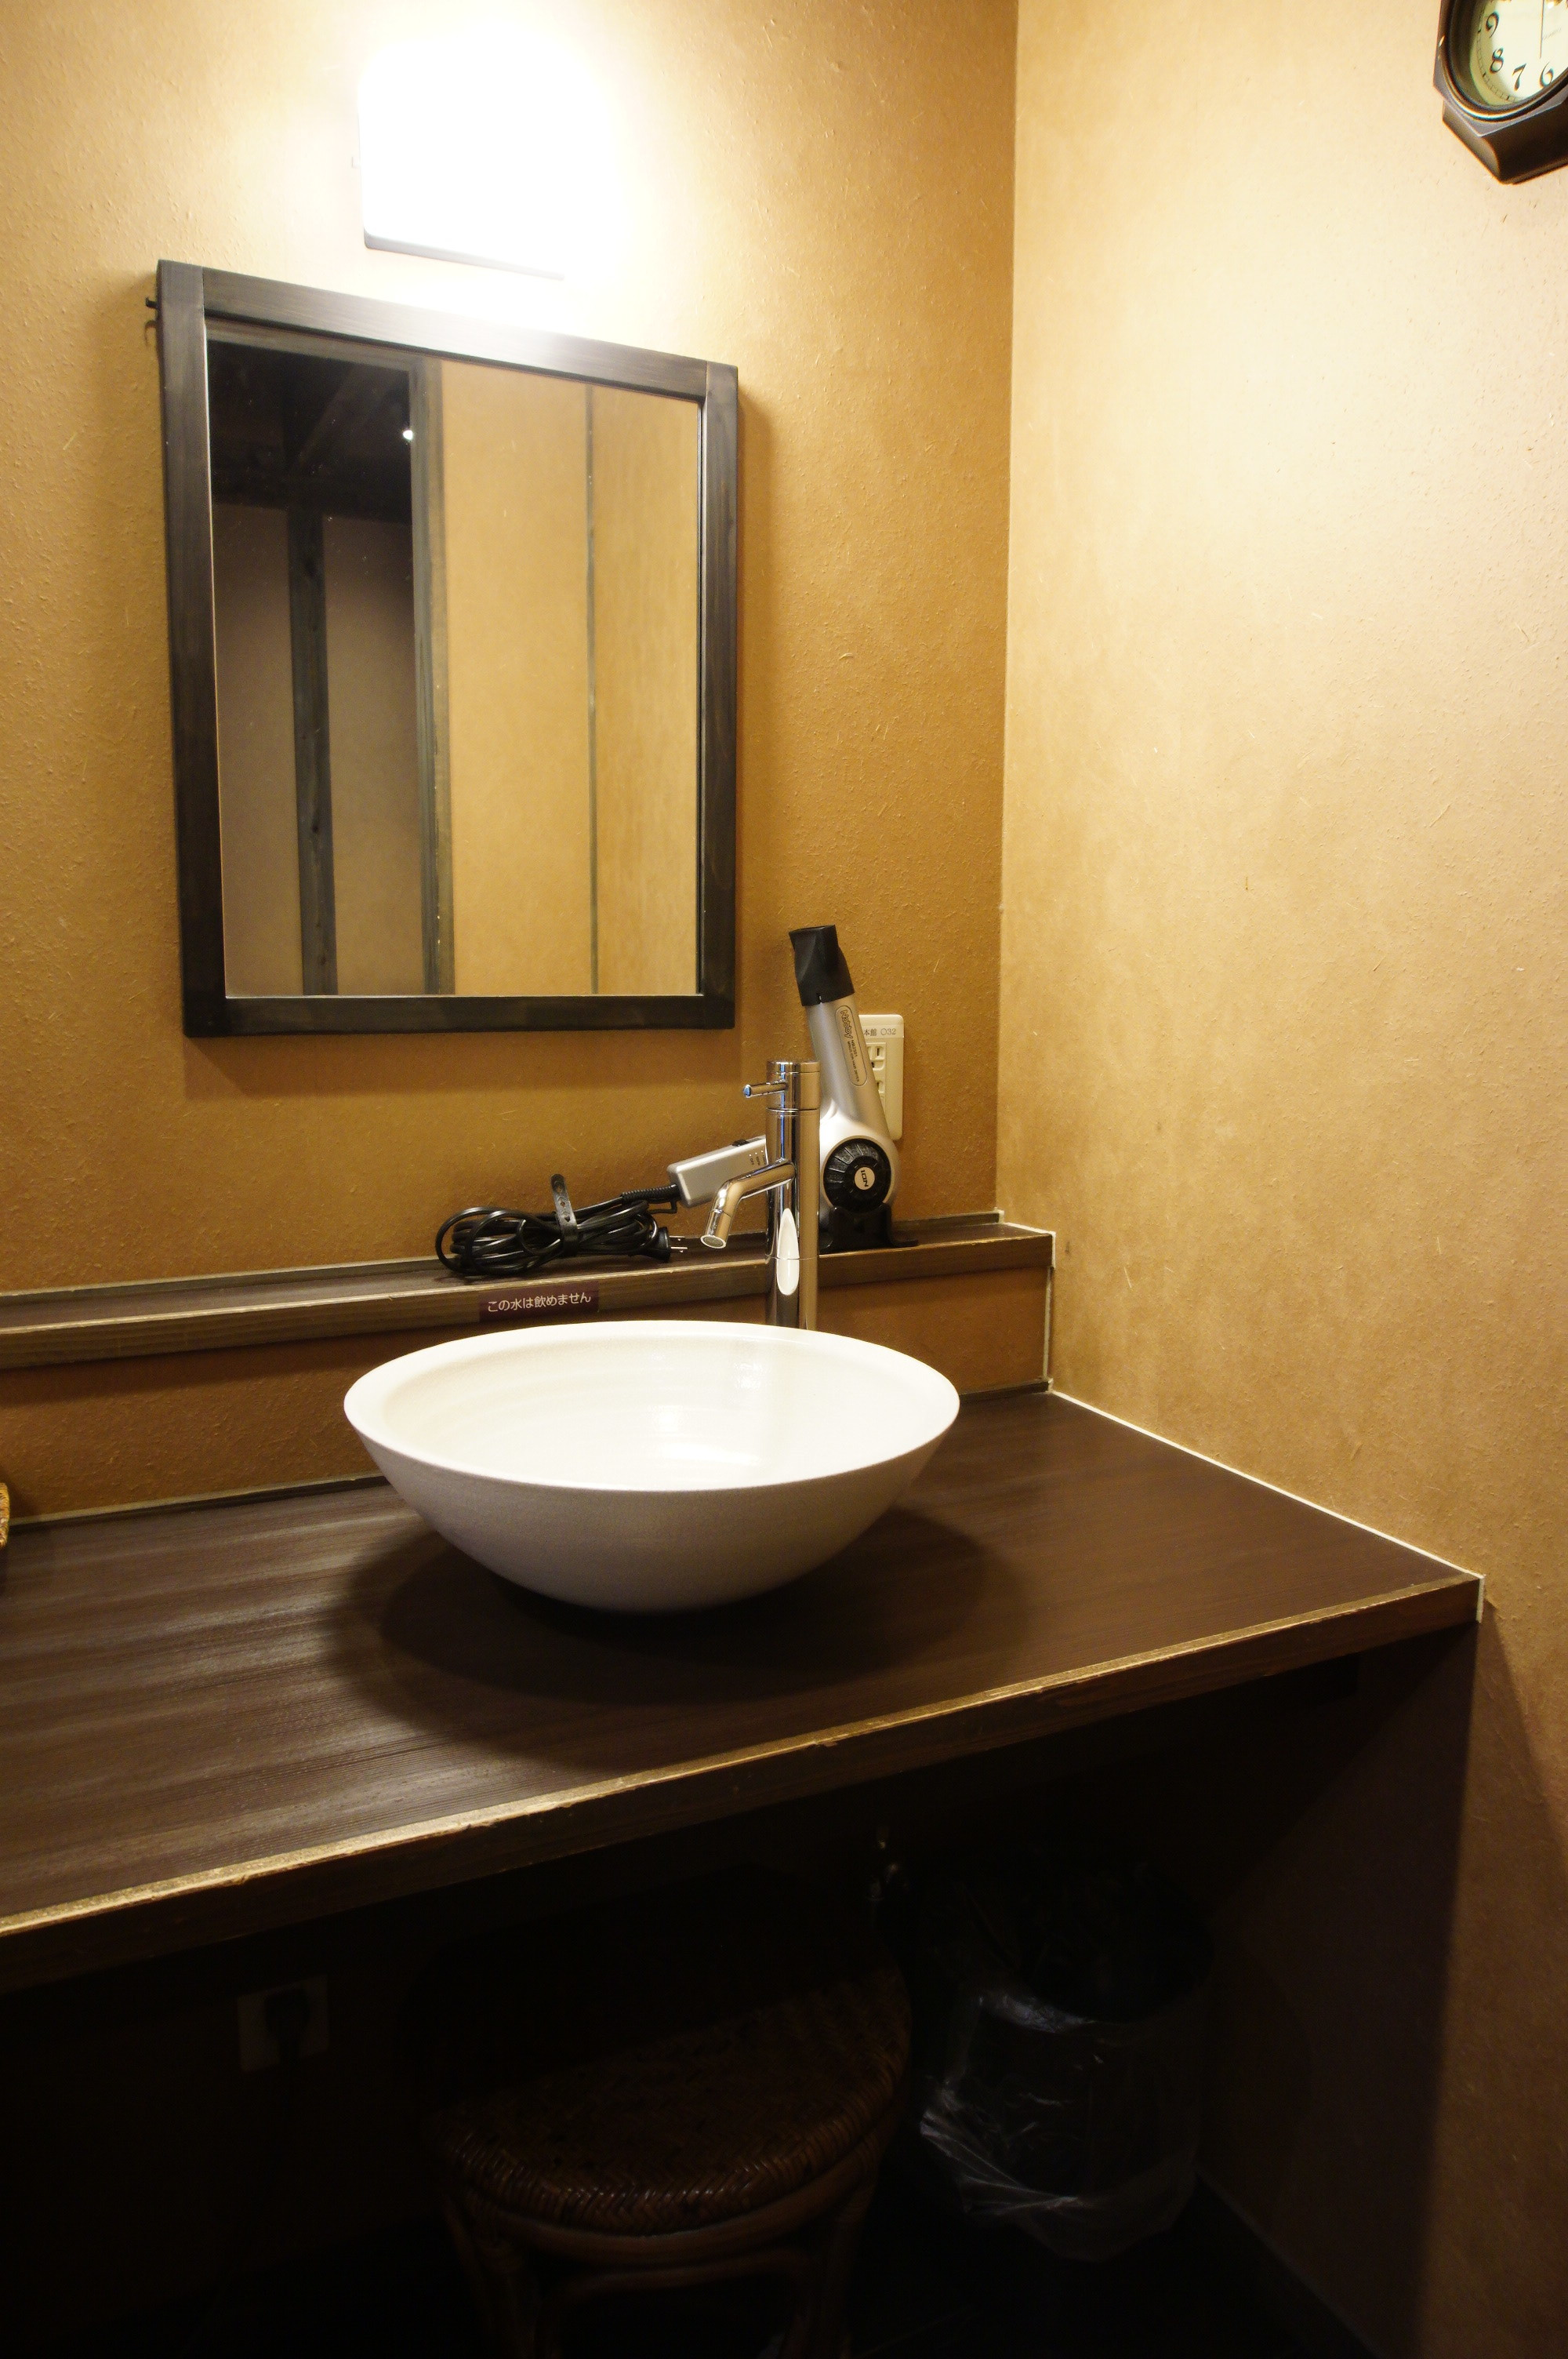 Hair-dryer is provided in each private room.